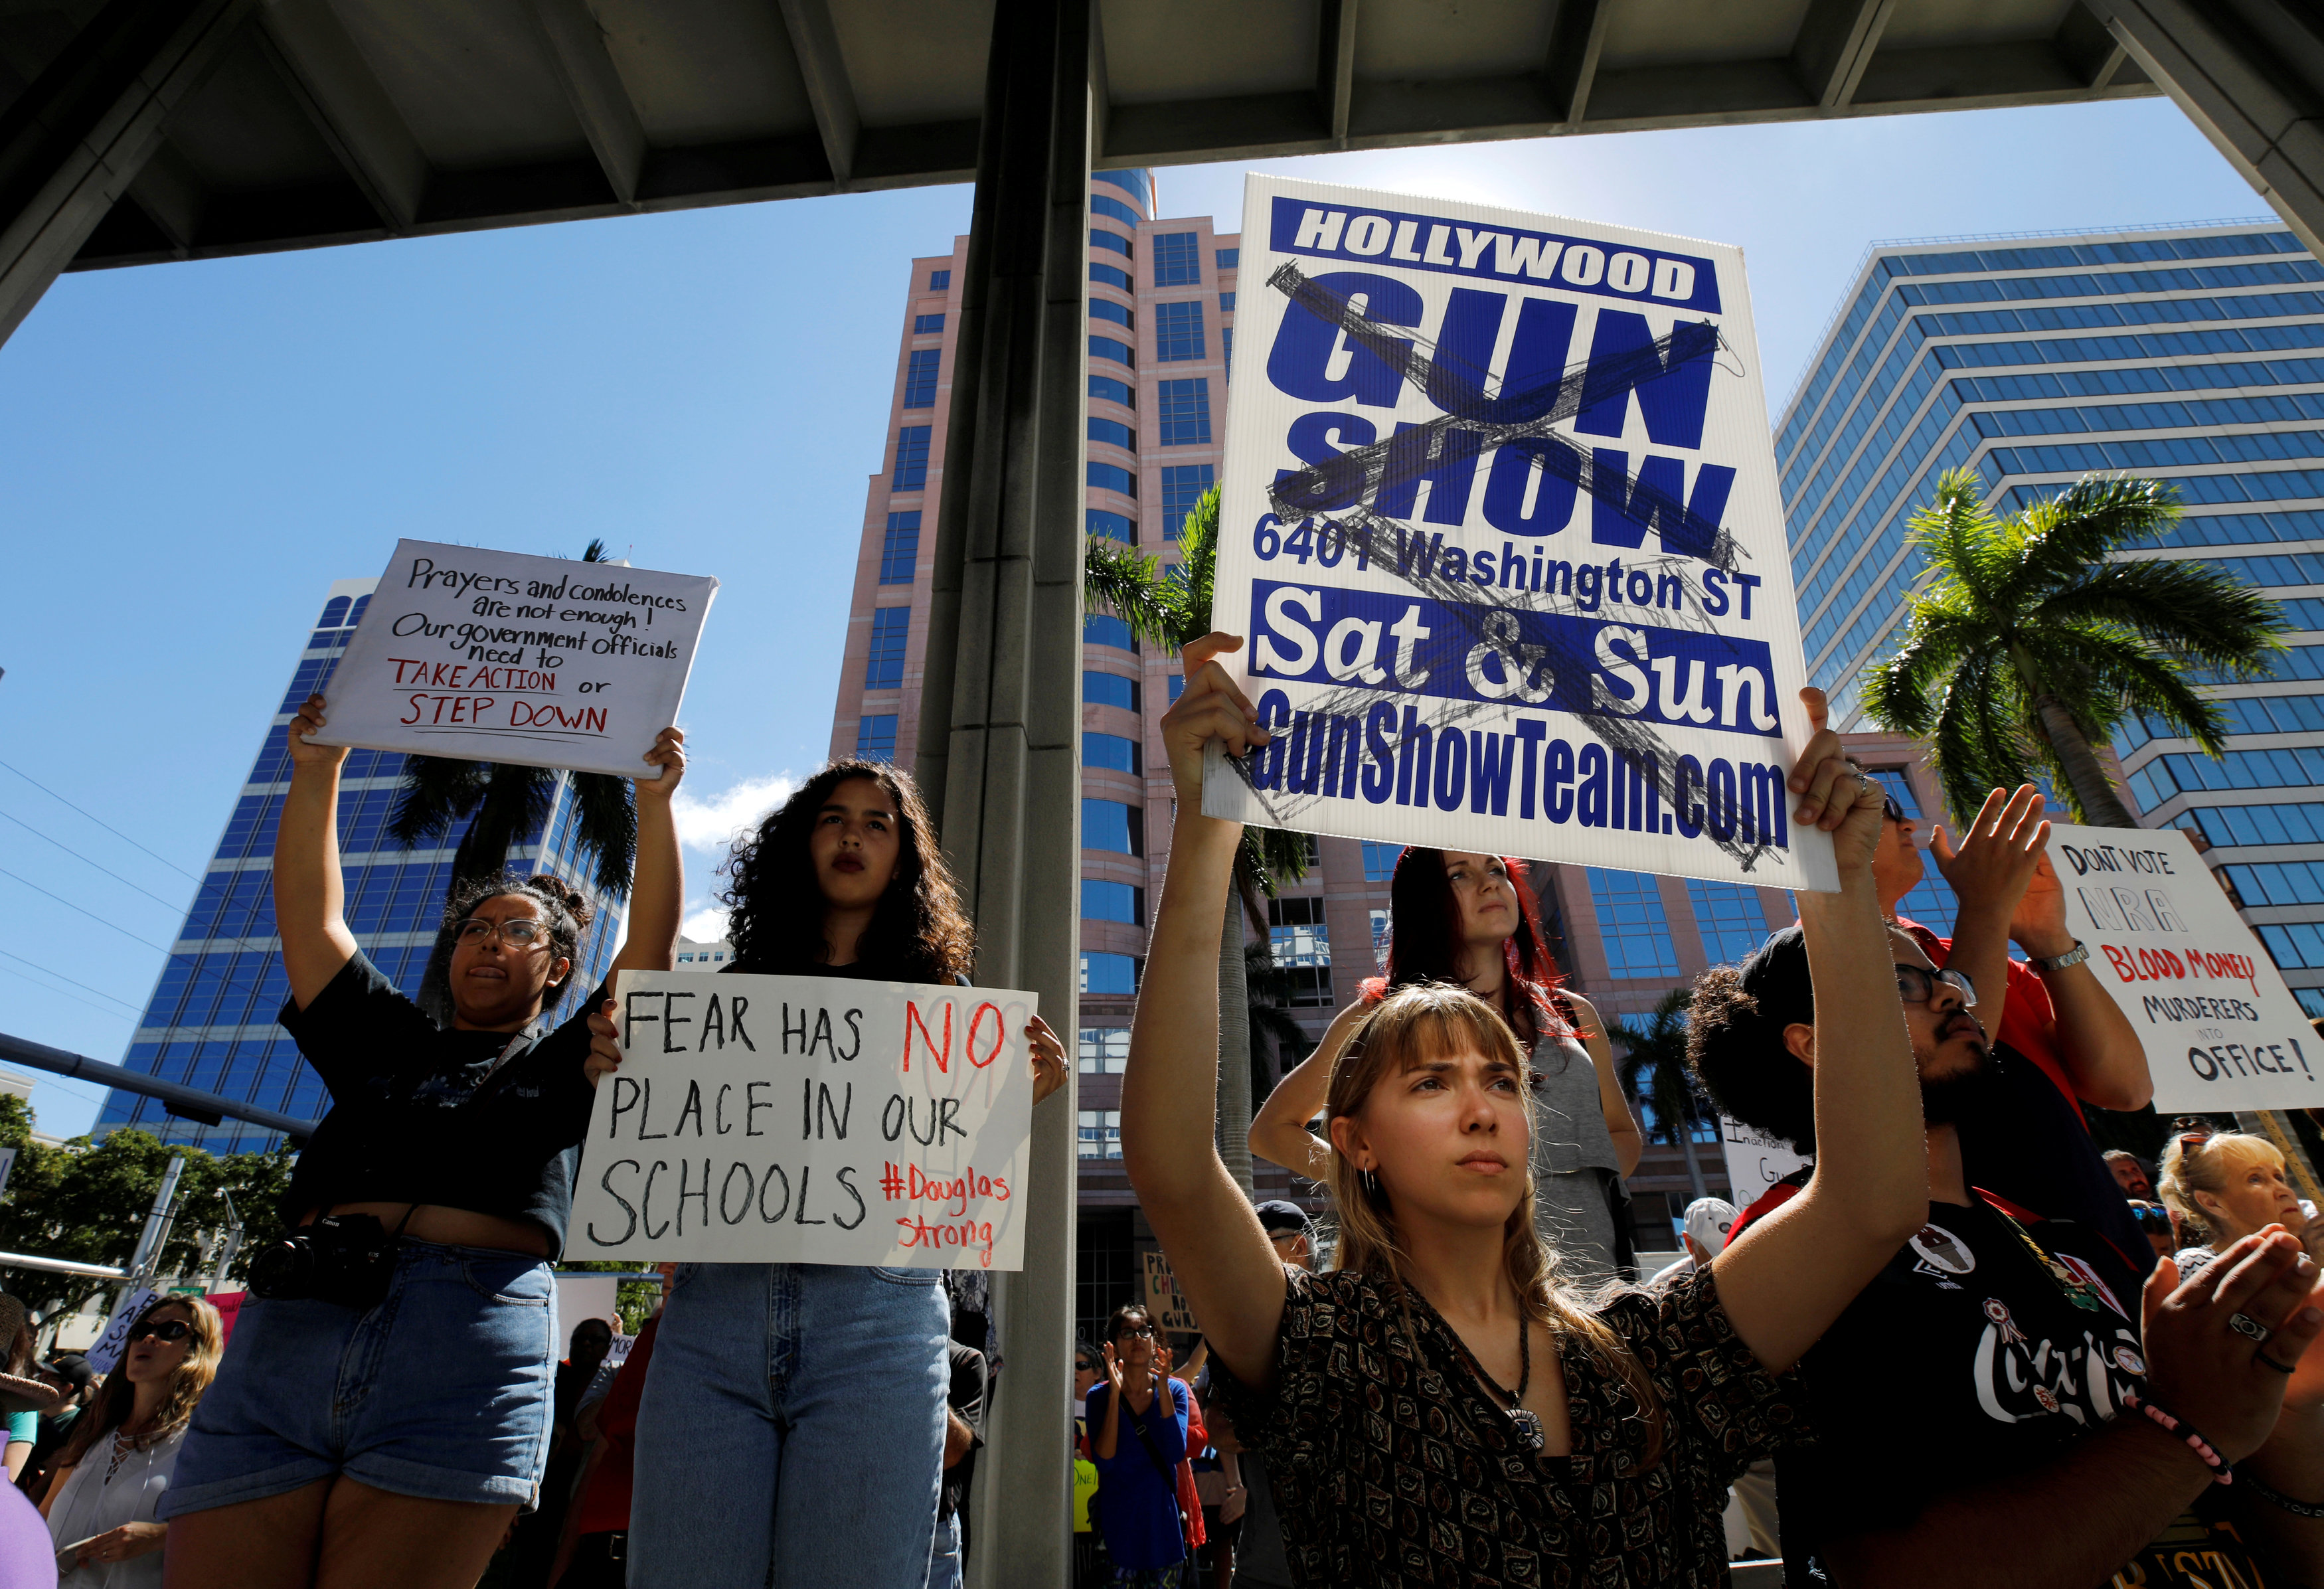 Miami Democrats protest to remove gun show from fairgrounds